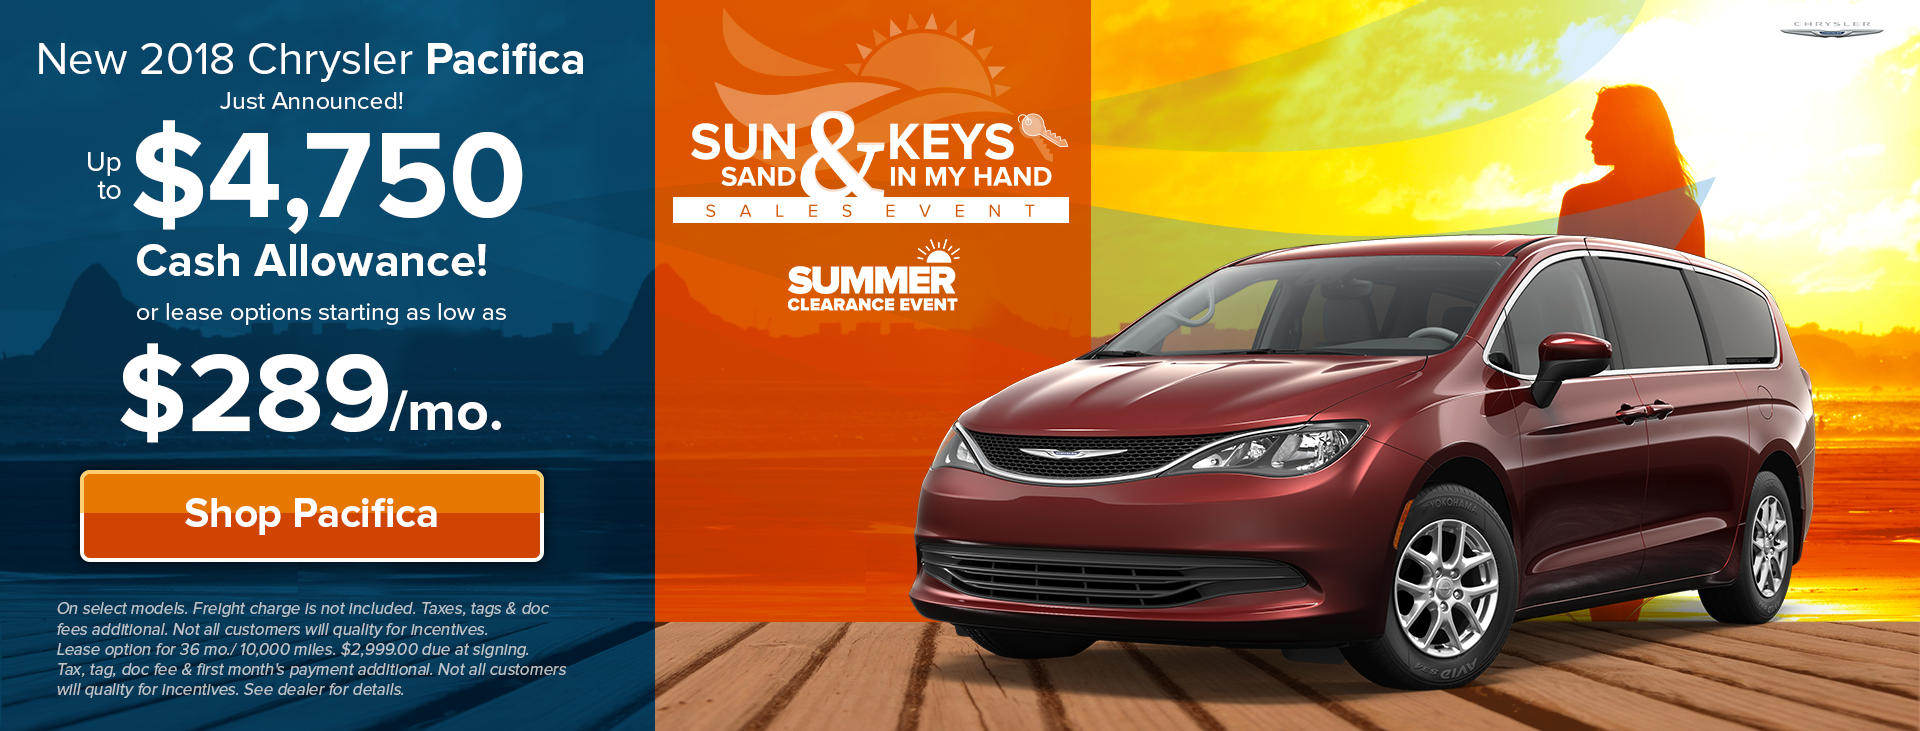 Sun, Sand & Chrysler Keys